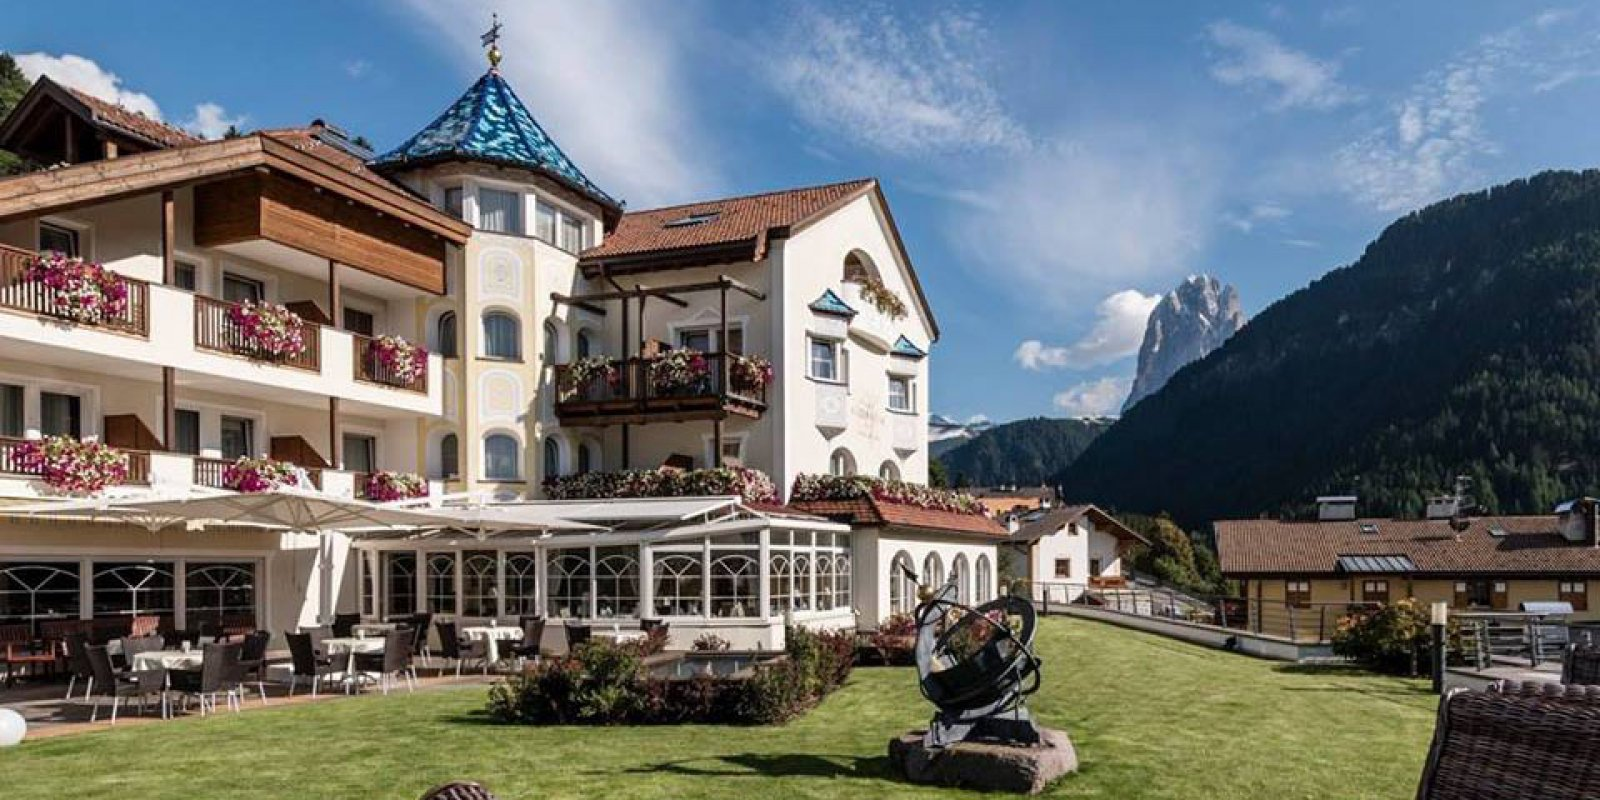 Alpenheim charming hotel spa hotel benessere con for Charming hotels